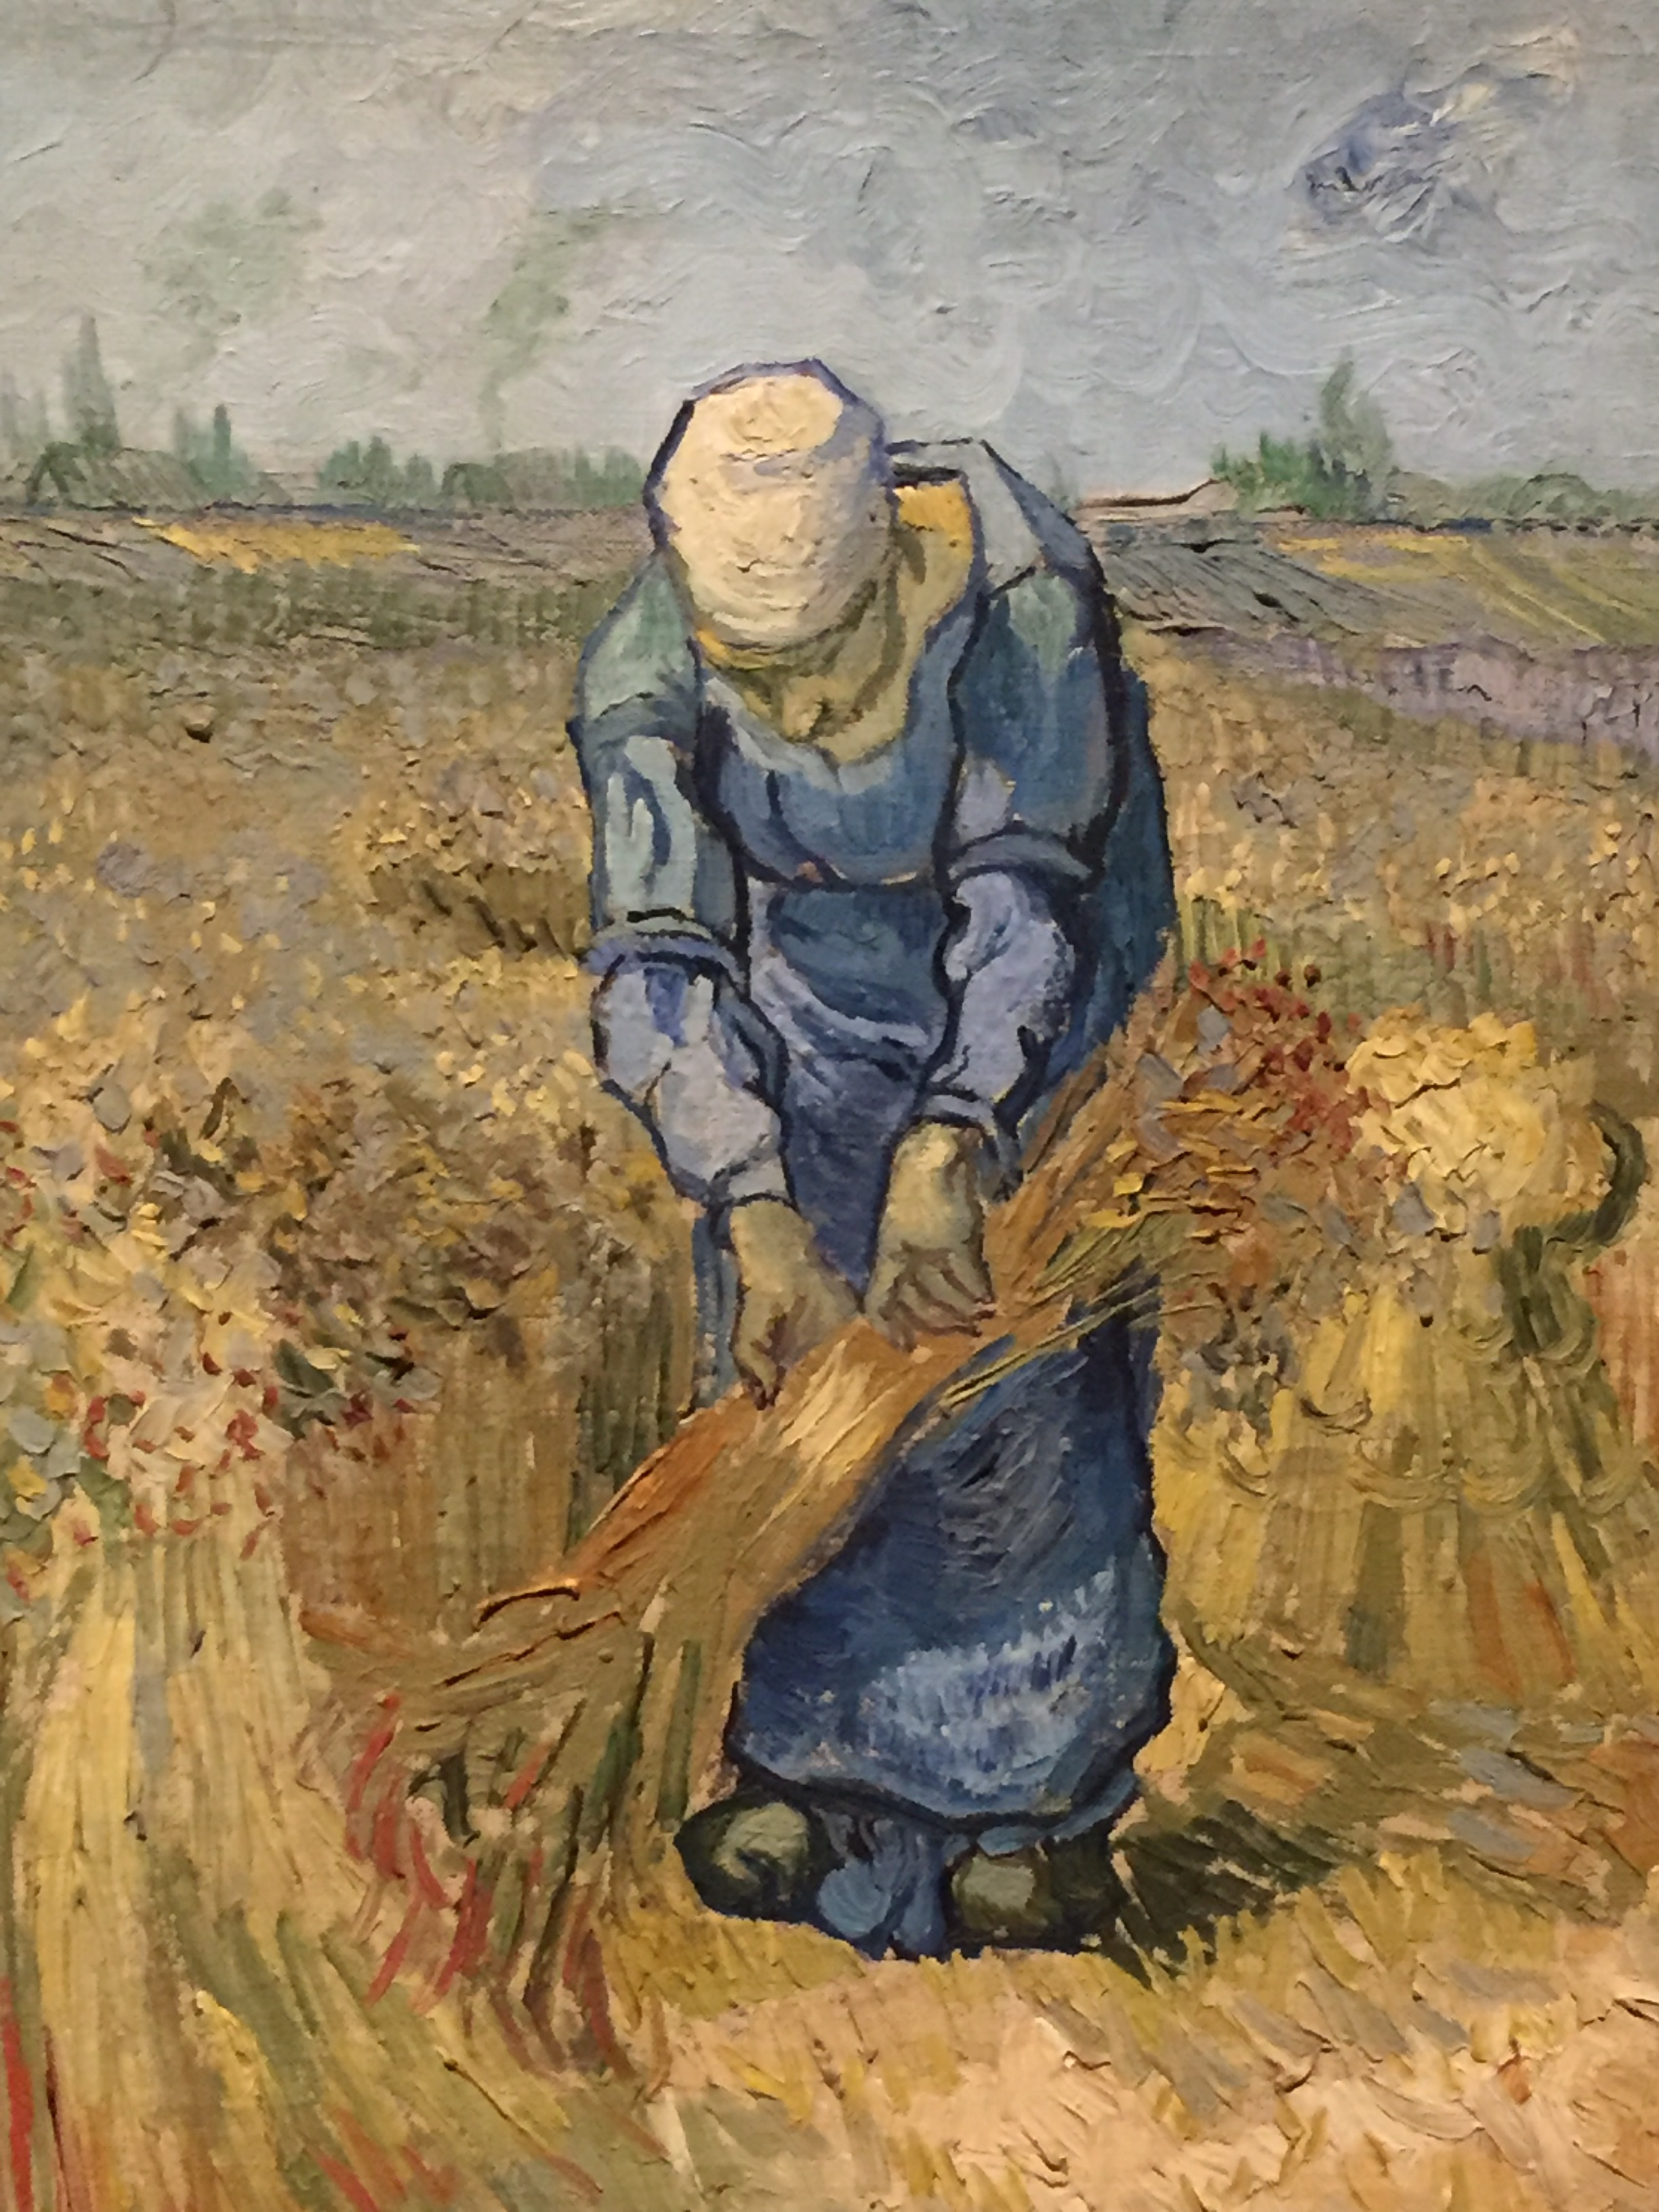 peasant van gogh after millet.JPG